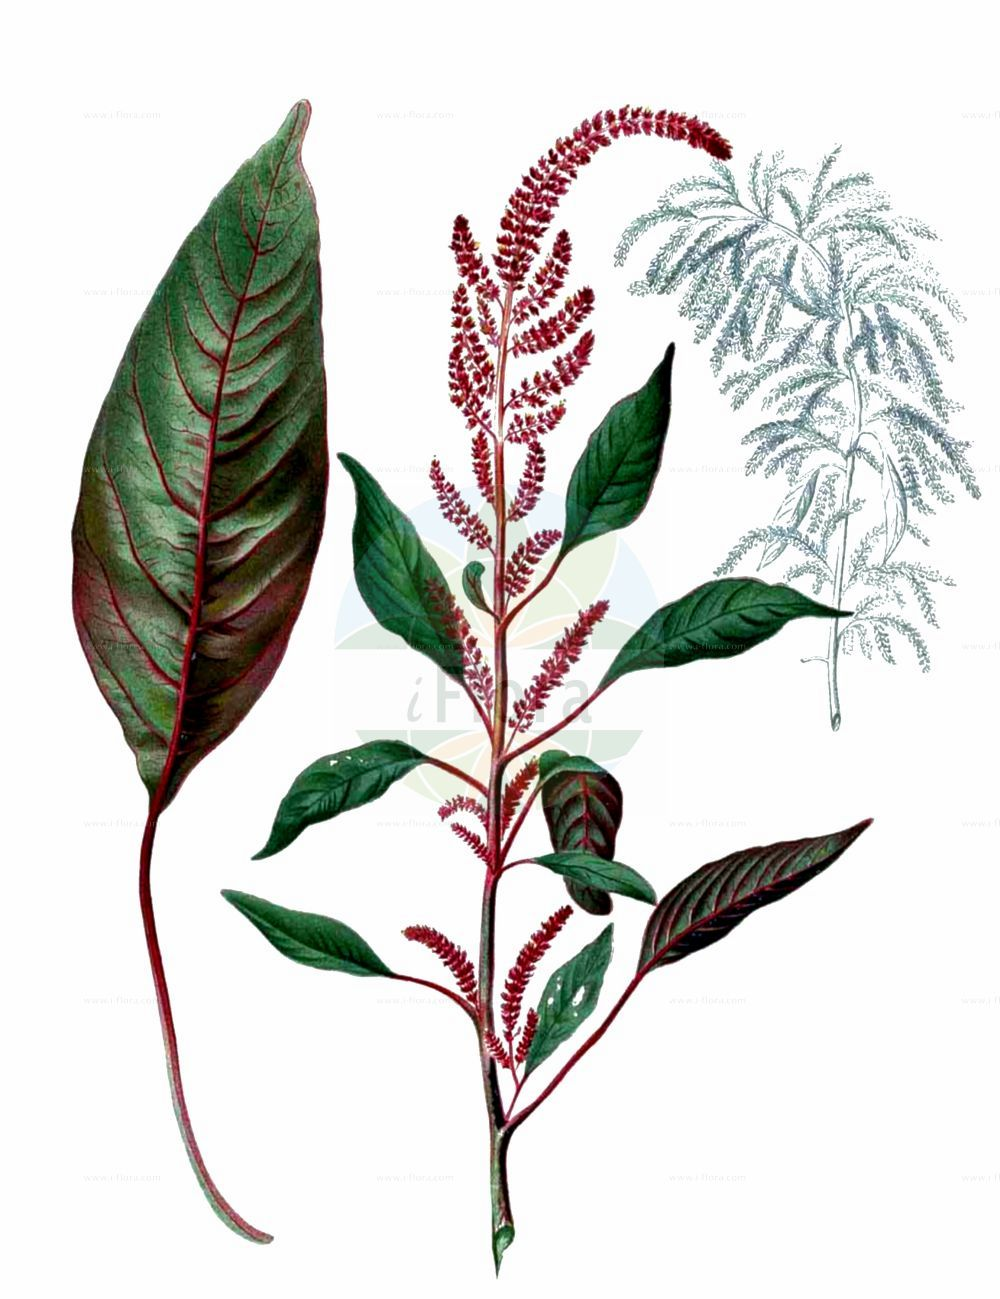 Historische Abbildung von Amaranthus cruentus. Das Bild zeigt Blatt, Bluete, Frucht und Same. ---- Historical Drawing of Amaranthus cruentus.The image is showing leaf, flower, fruit and seed.(Amaranthus cruentus,Amaranthus cruentus,Amaranthus paniculatus,Amaranthus paniculatus var. cruentus,Amaranthus,Fuchsschwanz,Pigweed,Amaranthaceae,Fuchsschwanzgewaechse,Pigweed family,Blatt,Bluete,Frucht,Same,leaf,flower,fruit,seed,Blanco (1837f))